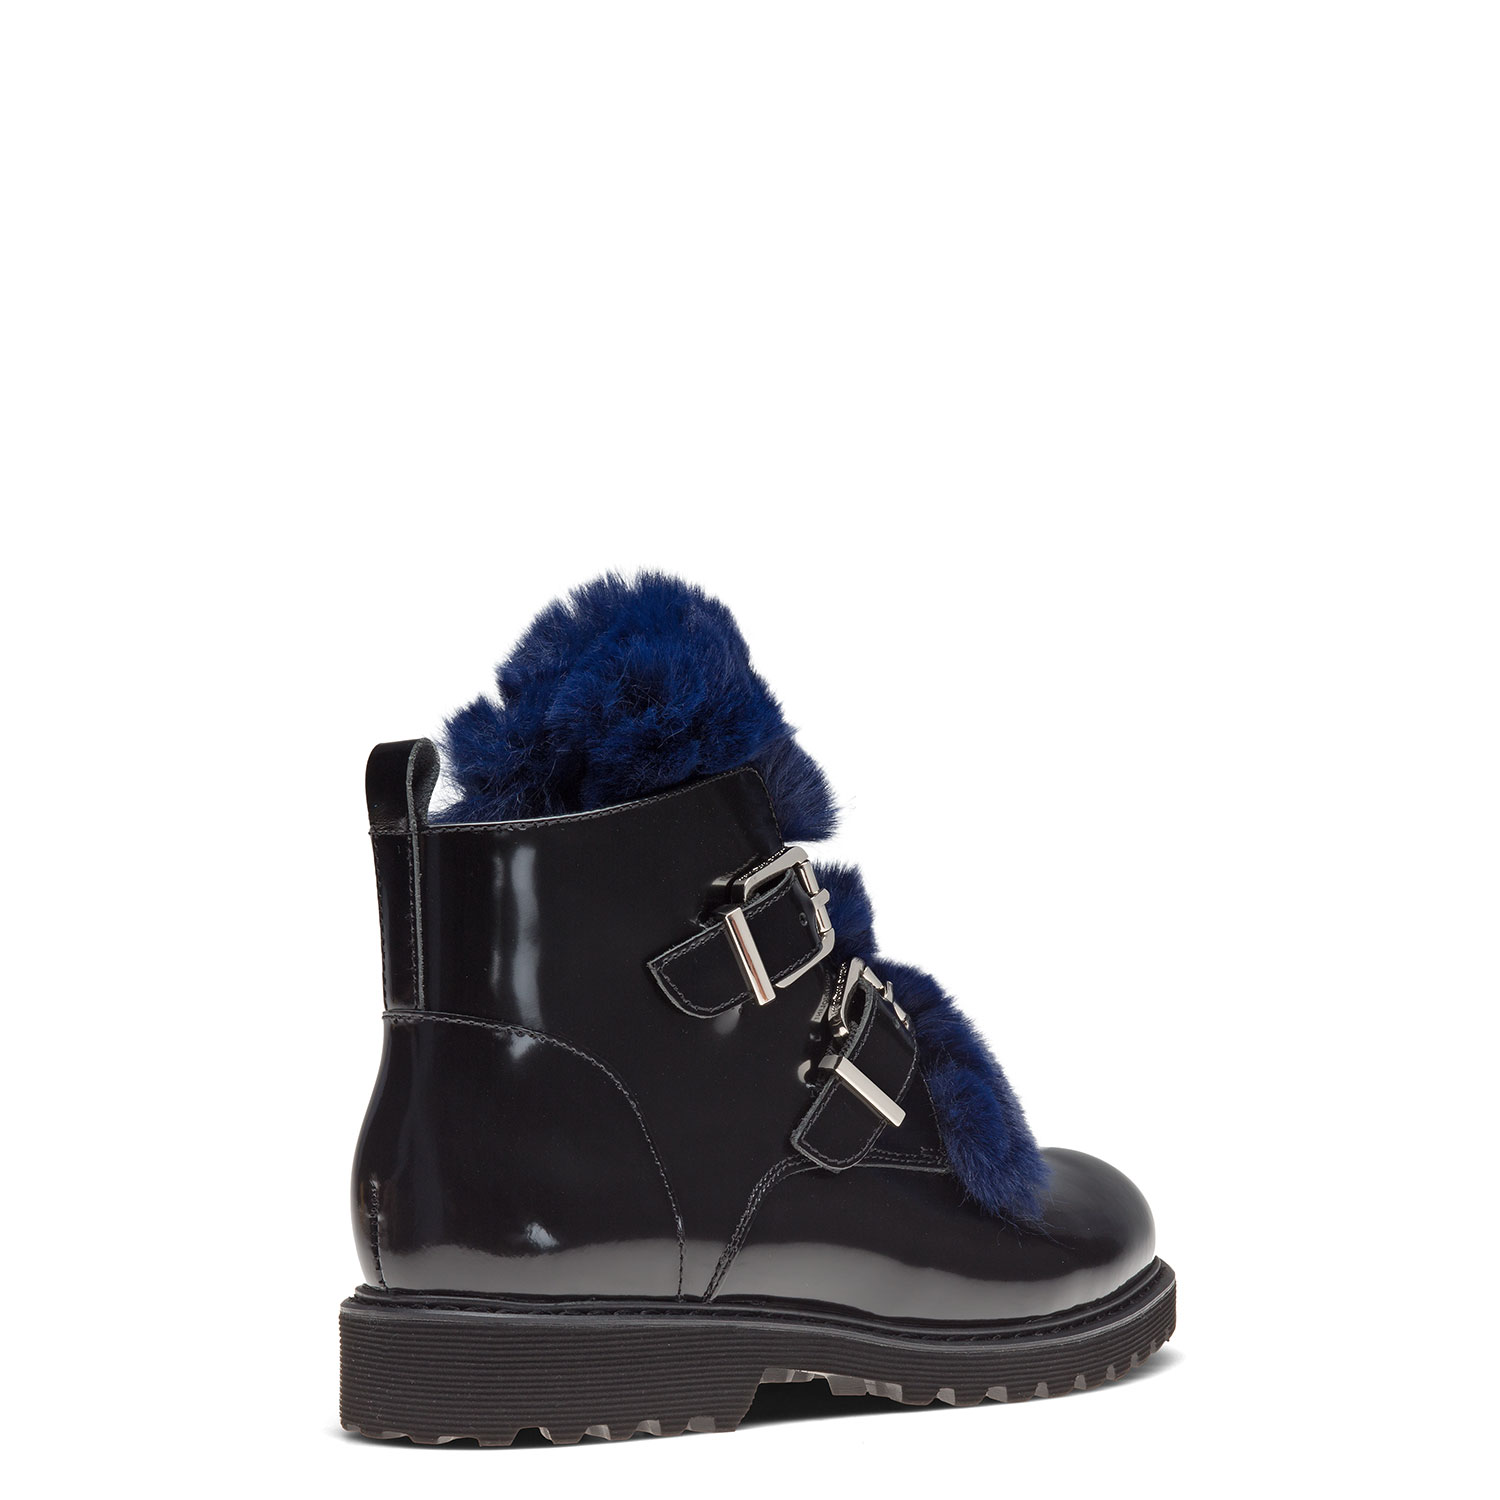 Women's cold weather ankle boots CARLO PAZOLINI JH-ERC7-19